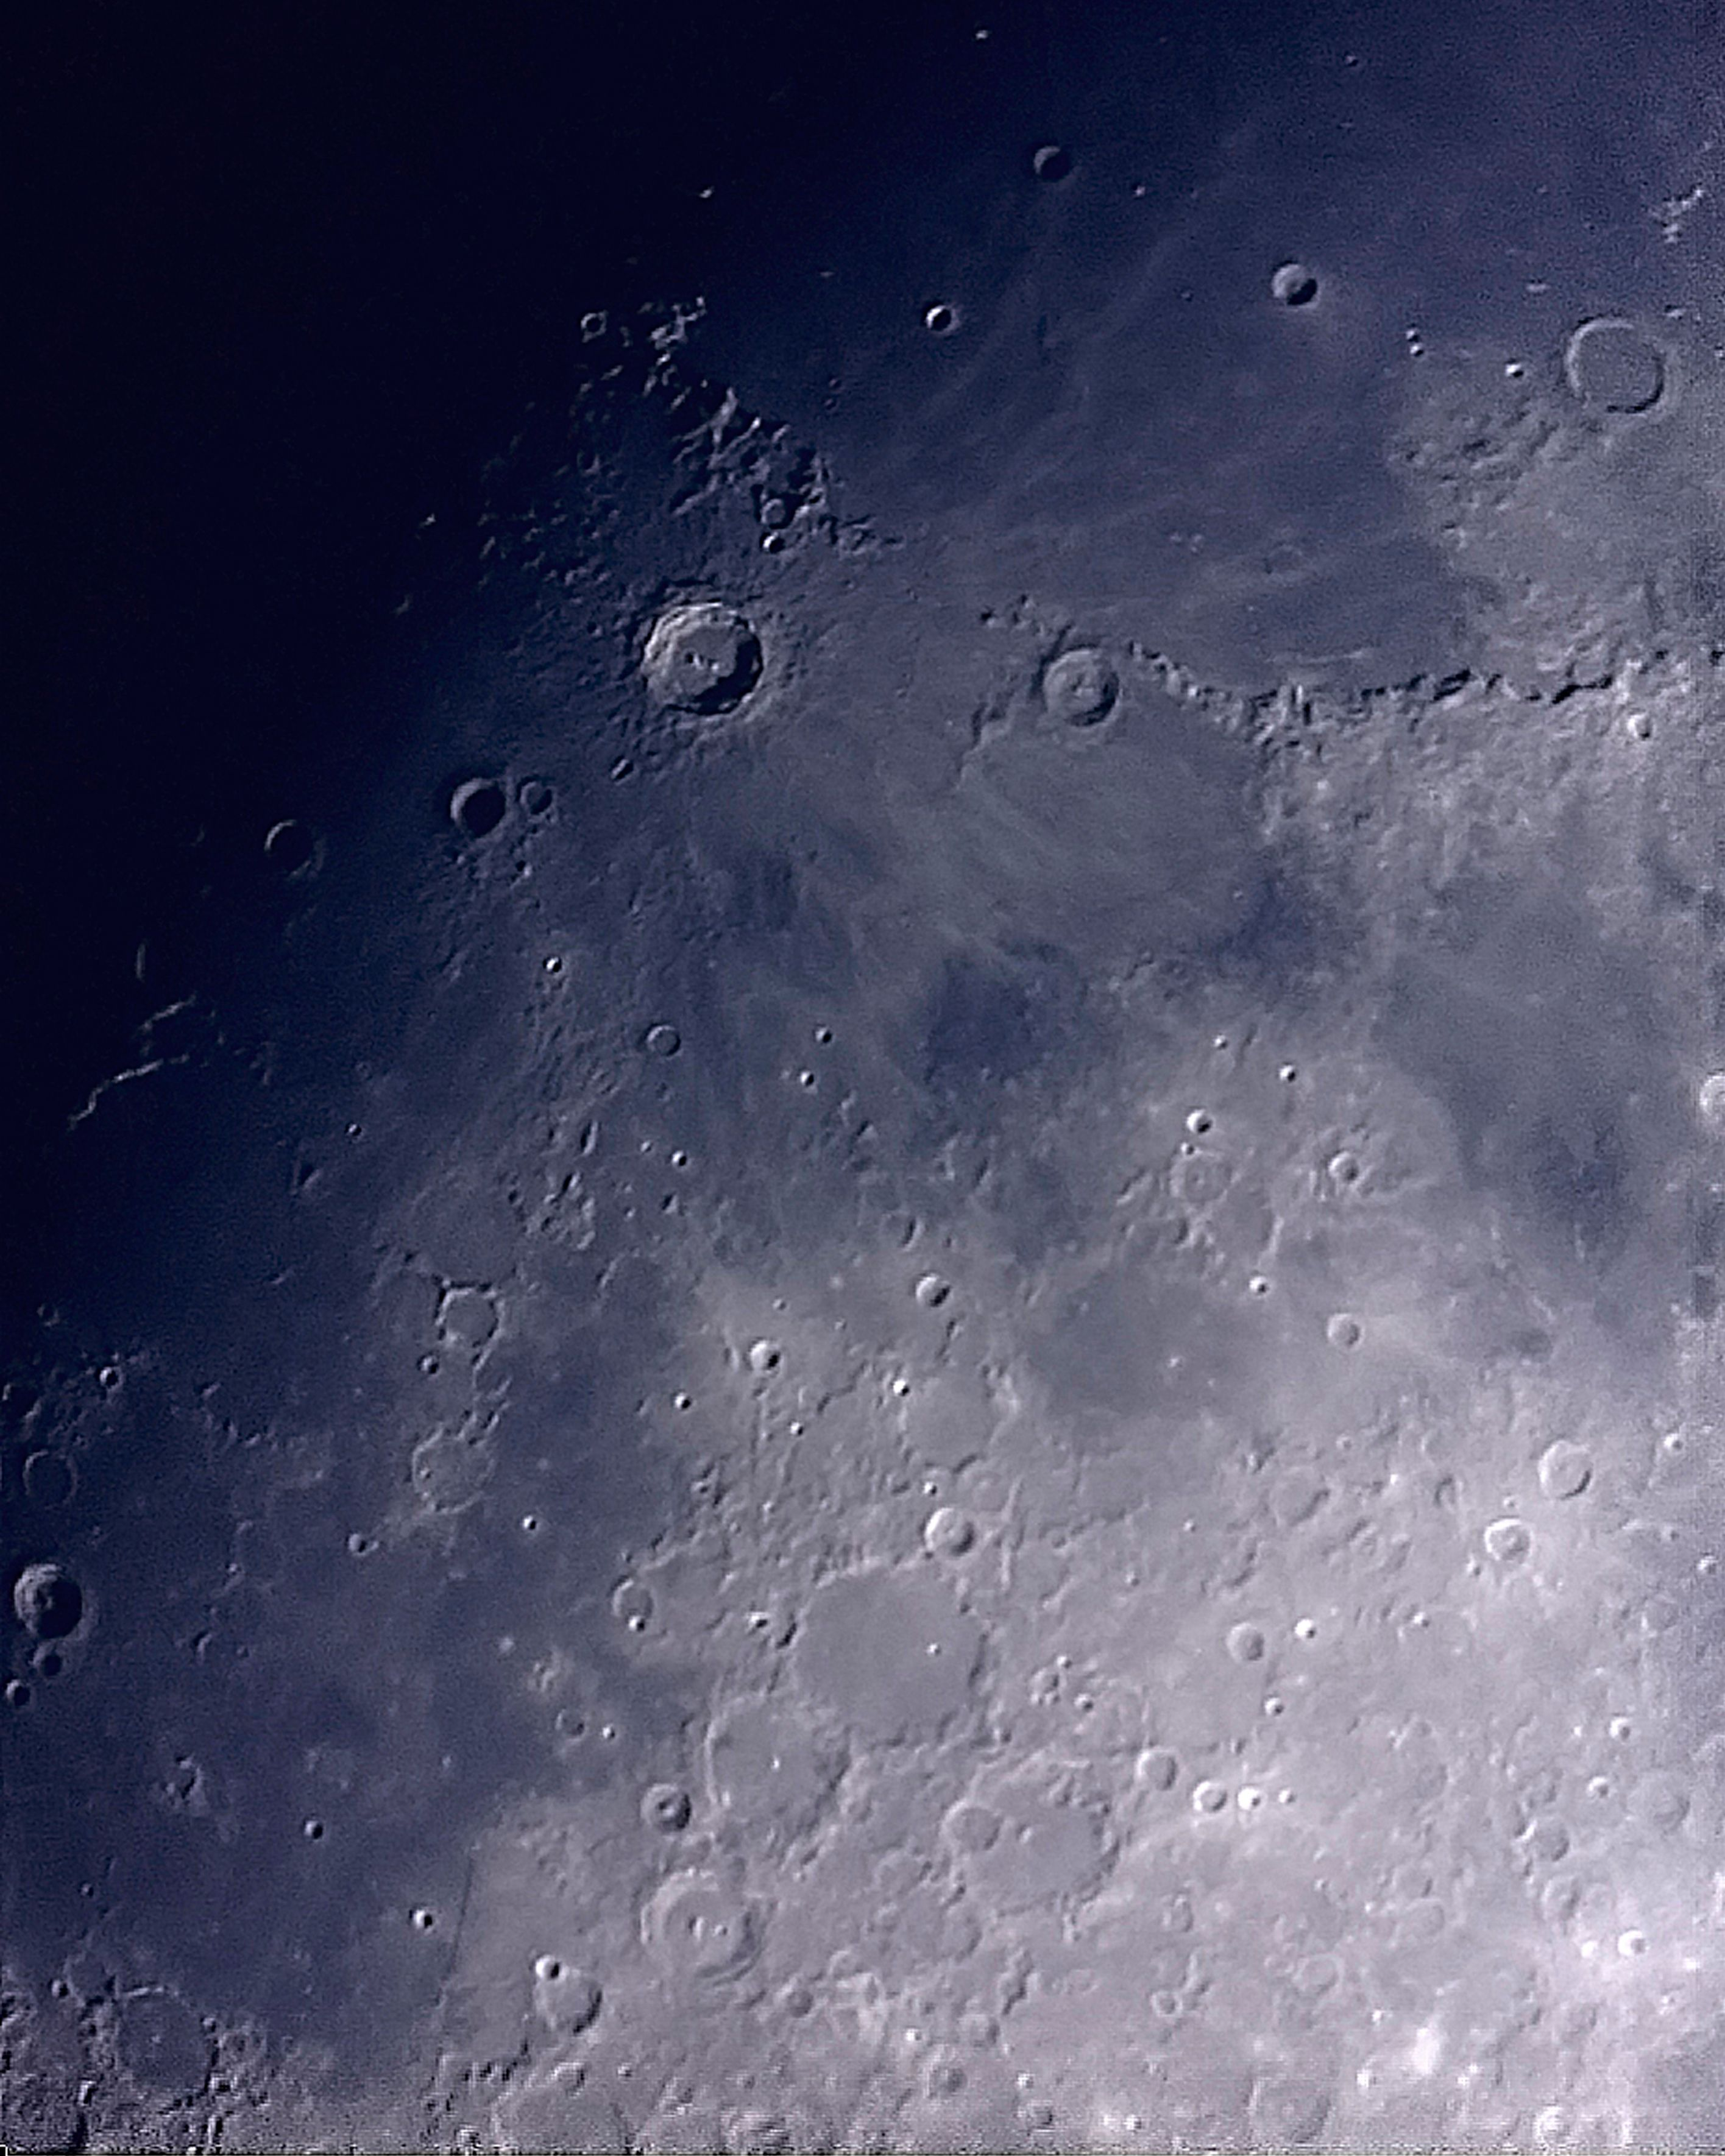 Moon - Crater Copernicus at Orion Store